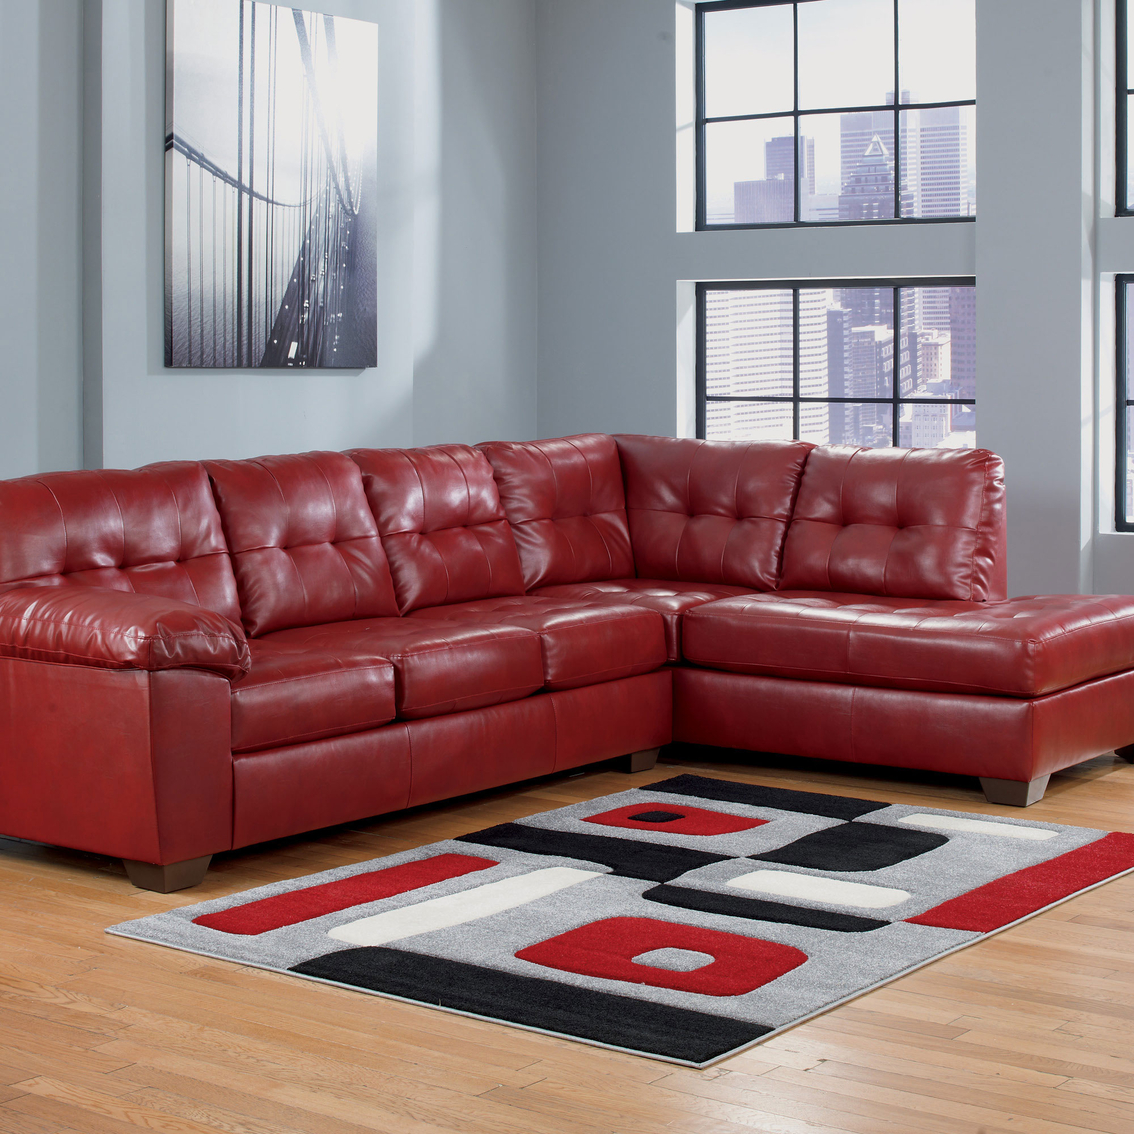 2 pc laf sectional sofa rust colored leather signature design by ashley alliston durablend ...